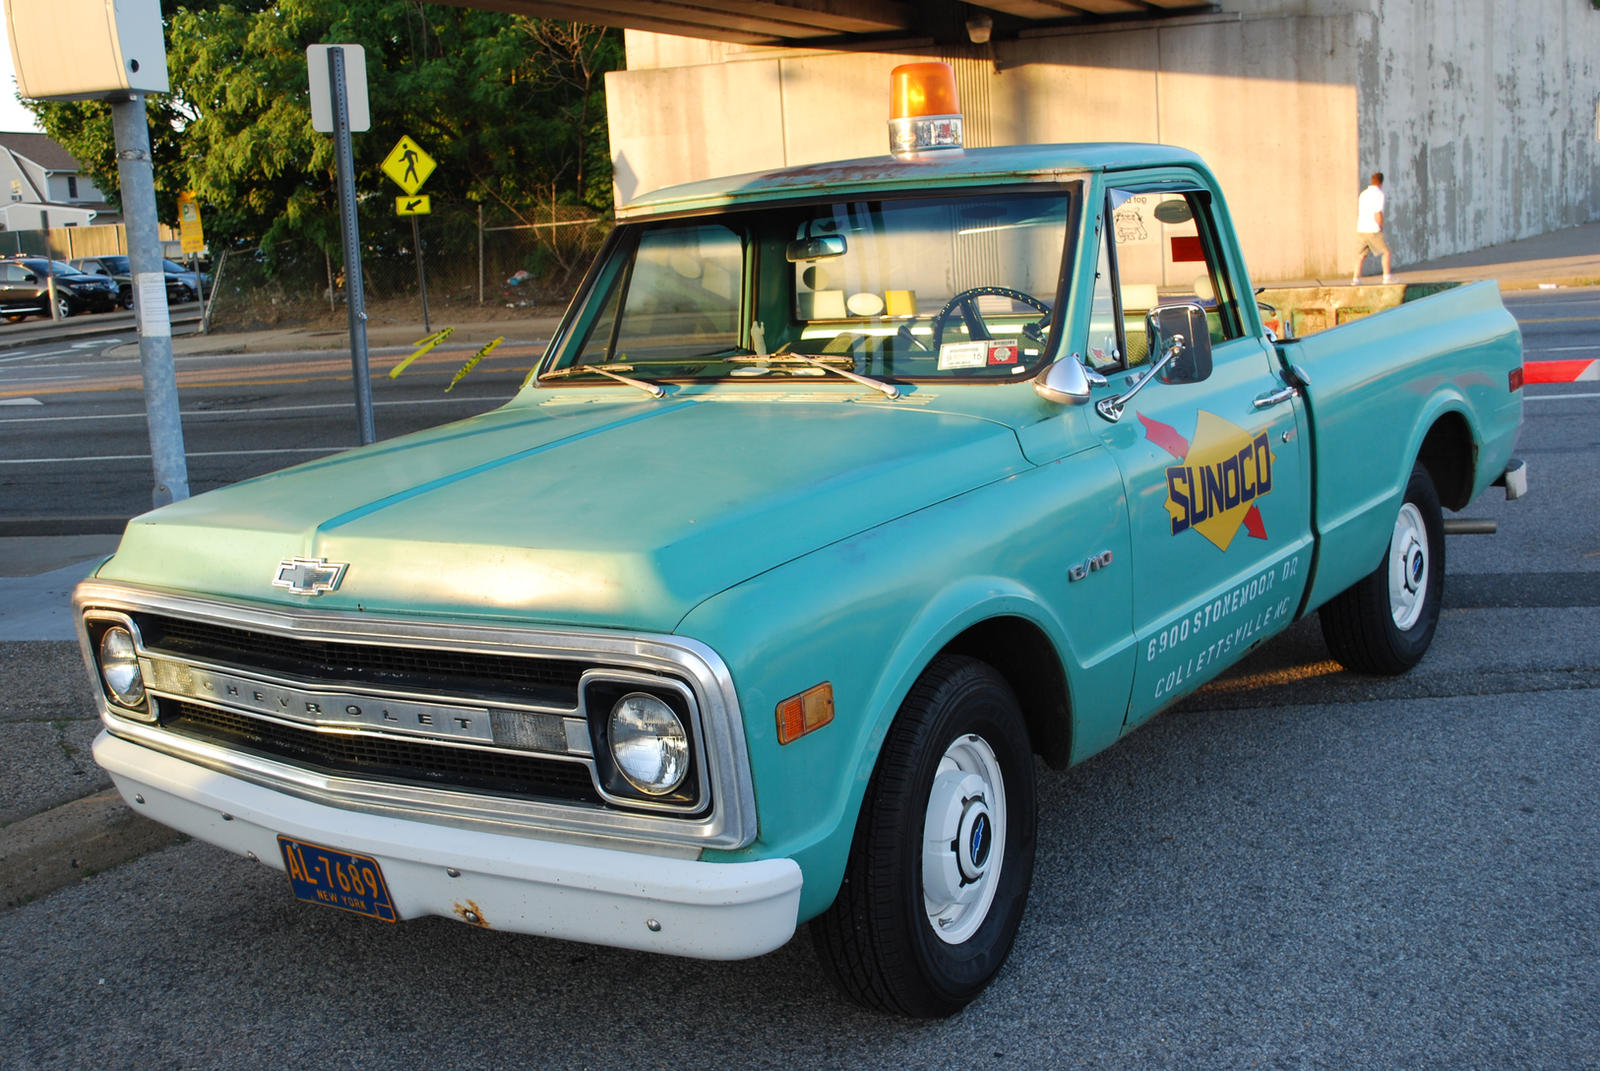 1969 CHEVROLET C10 SUNOCO Service Truck (I) by HardRocker78 on ...